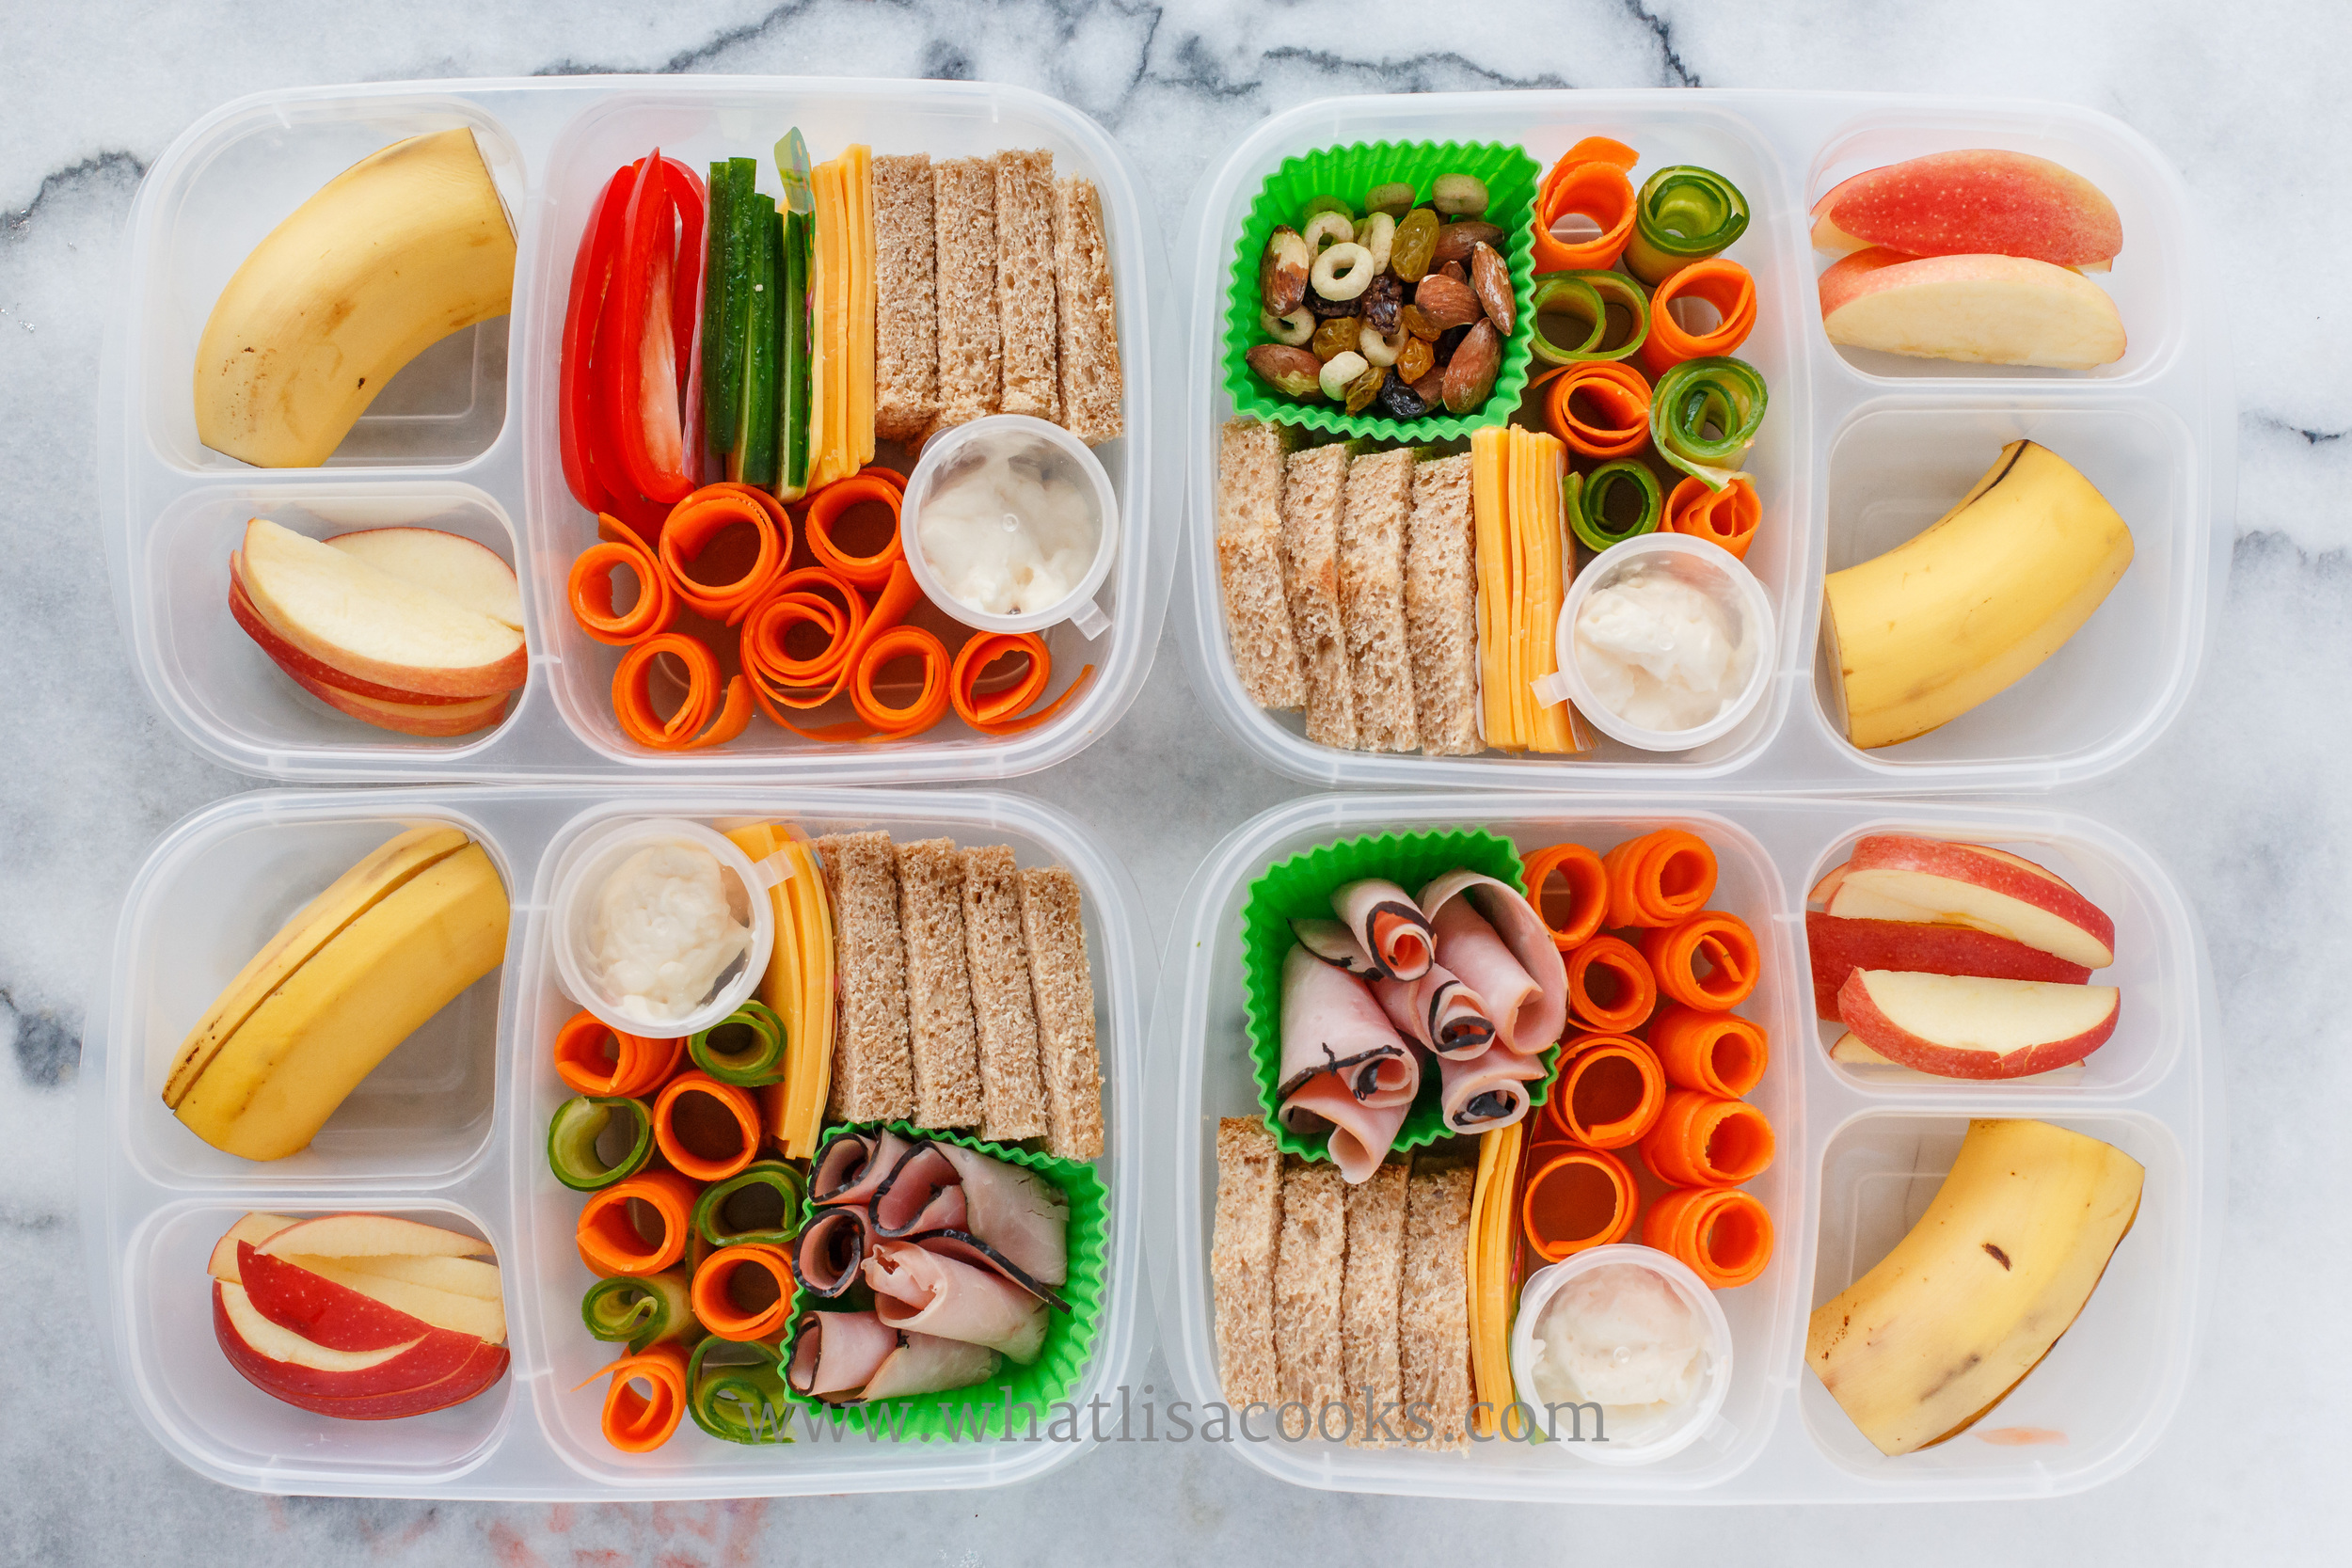 My kids love to make their own sandwiches.  This is one of their favorite lunches.  They have bread, cheese, mayo, and various combinations of veggies and ham.  With apple and banana.